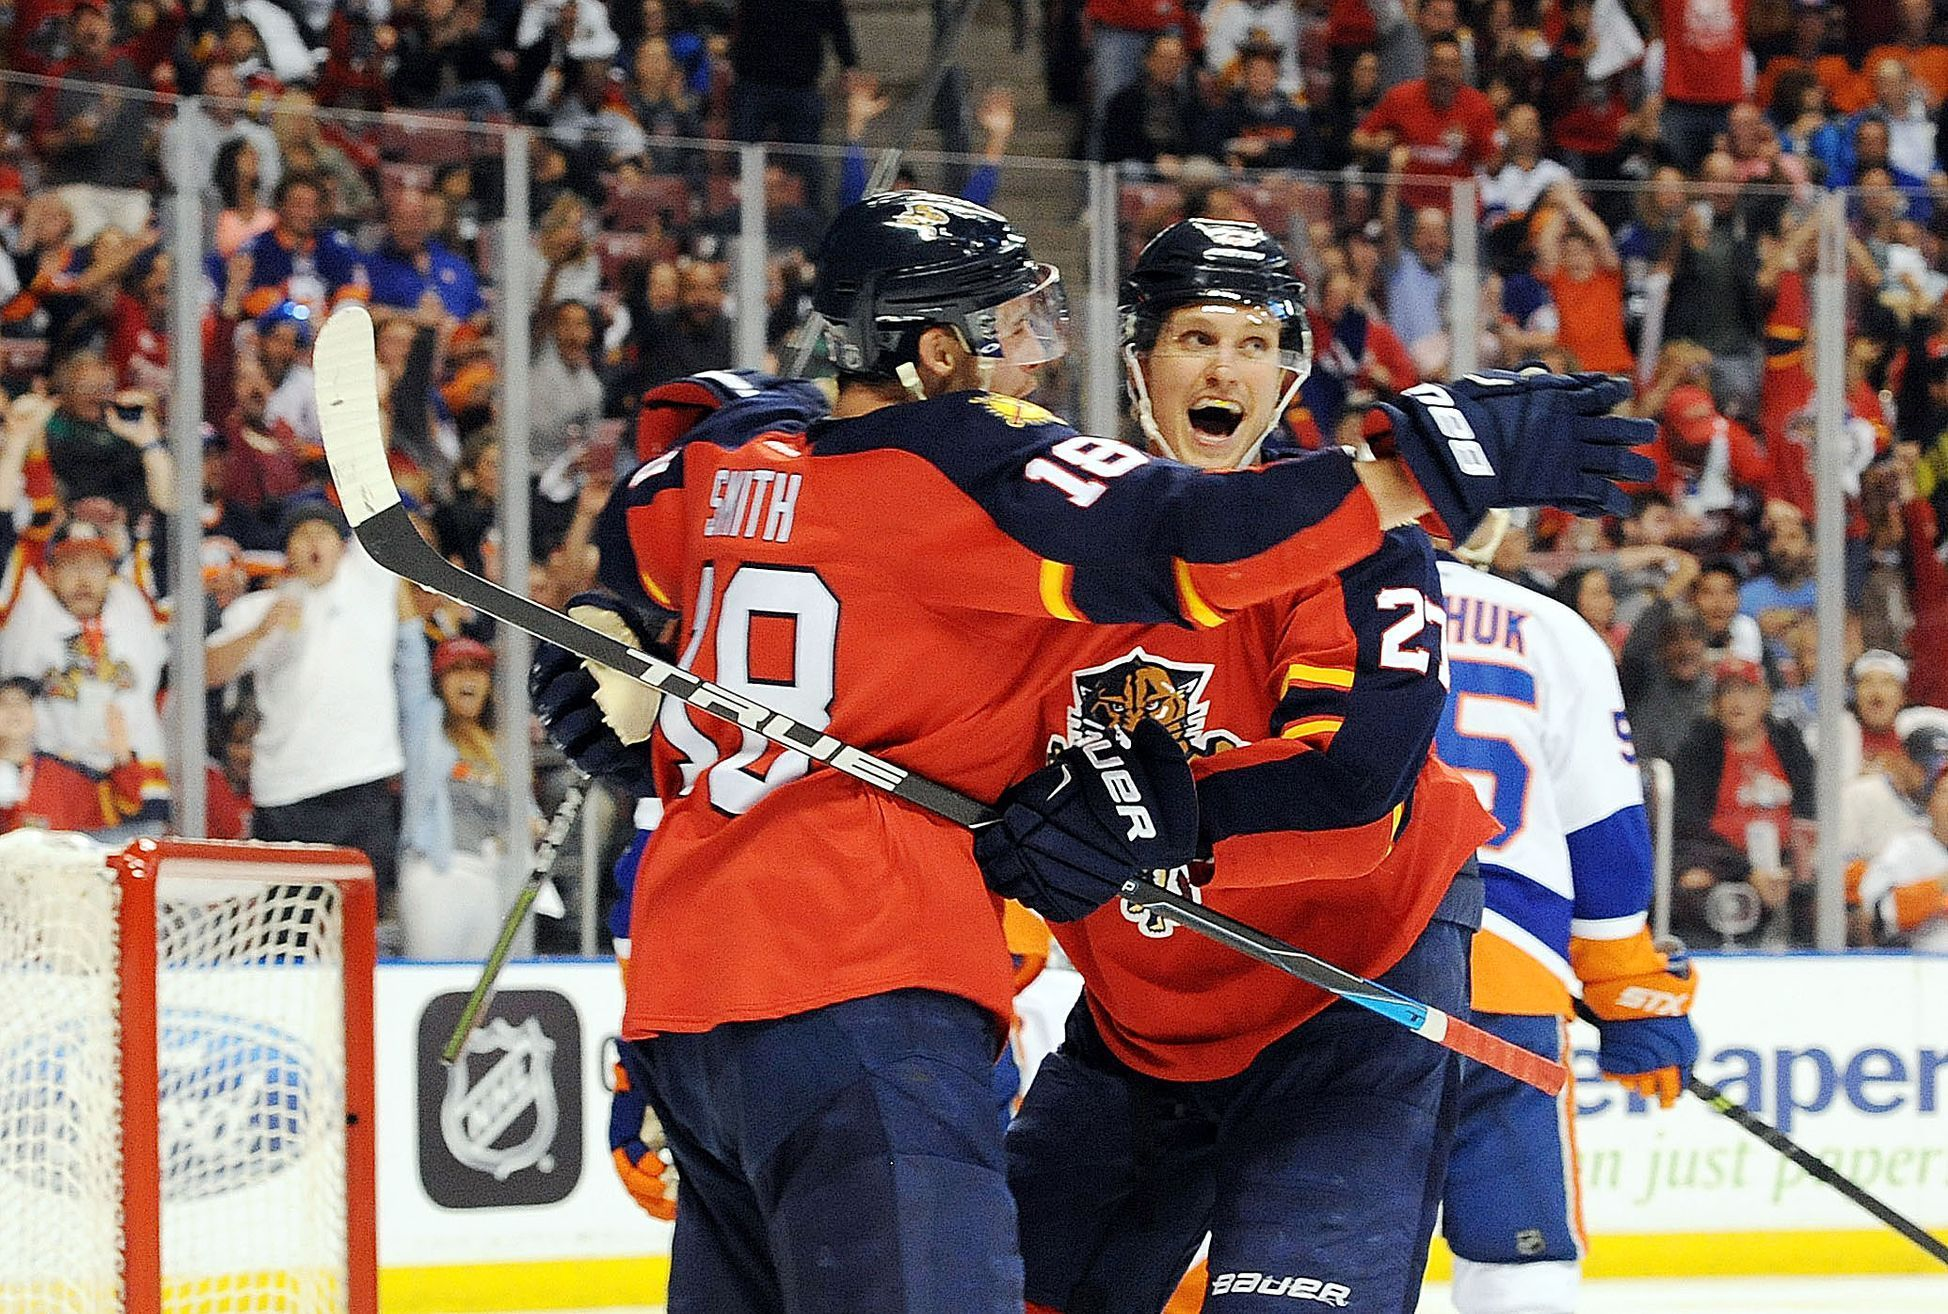 NHL play-off: Florida Panthers vs New York Islanders